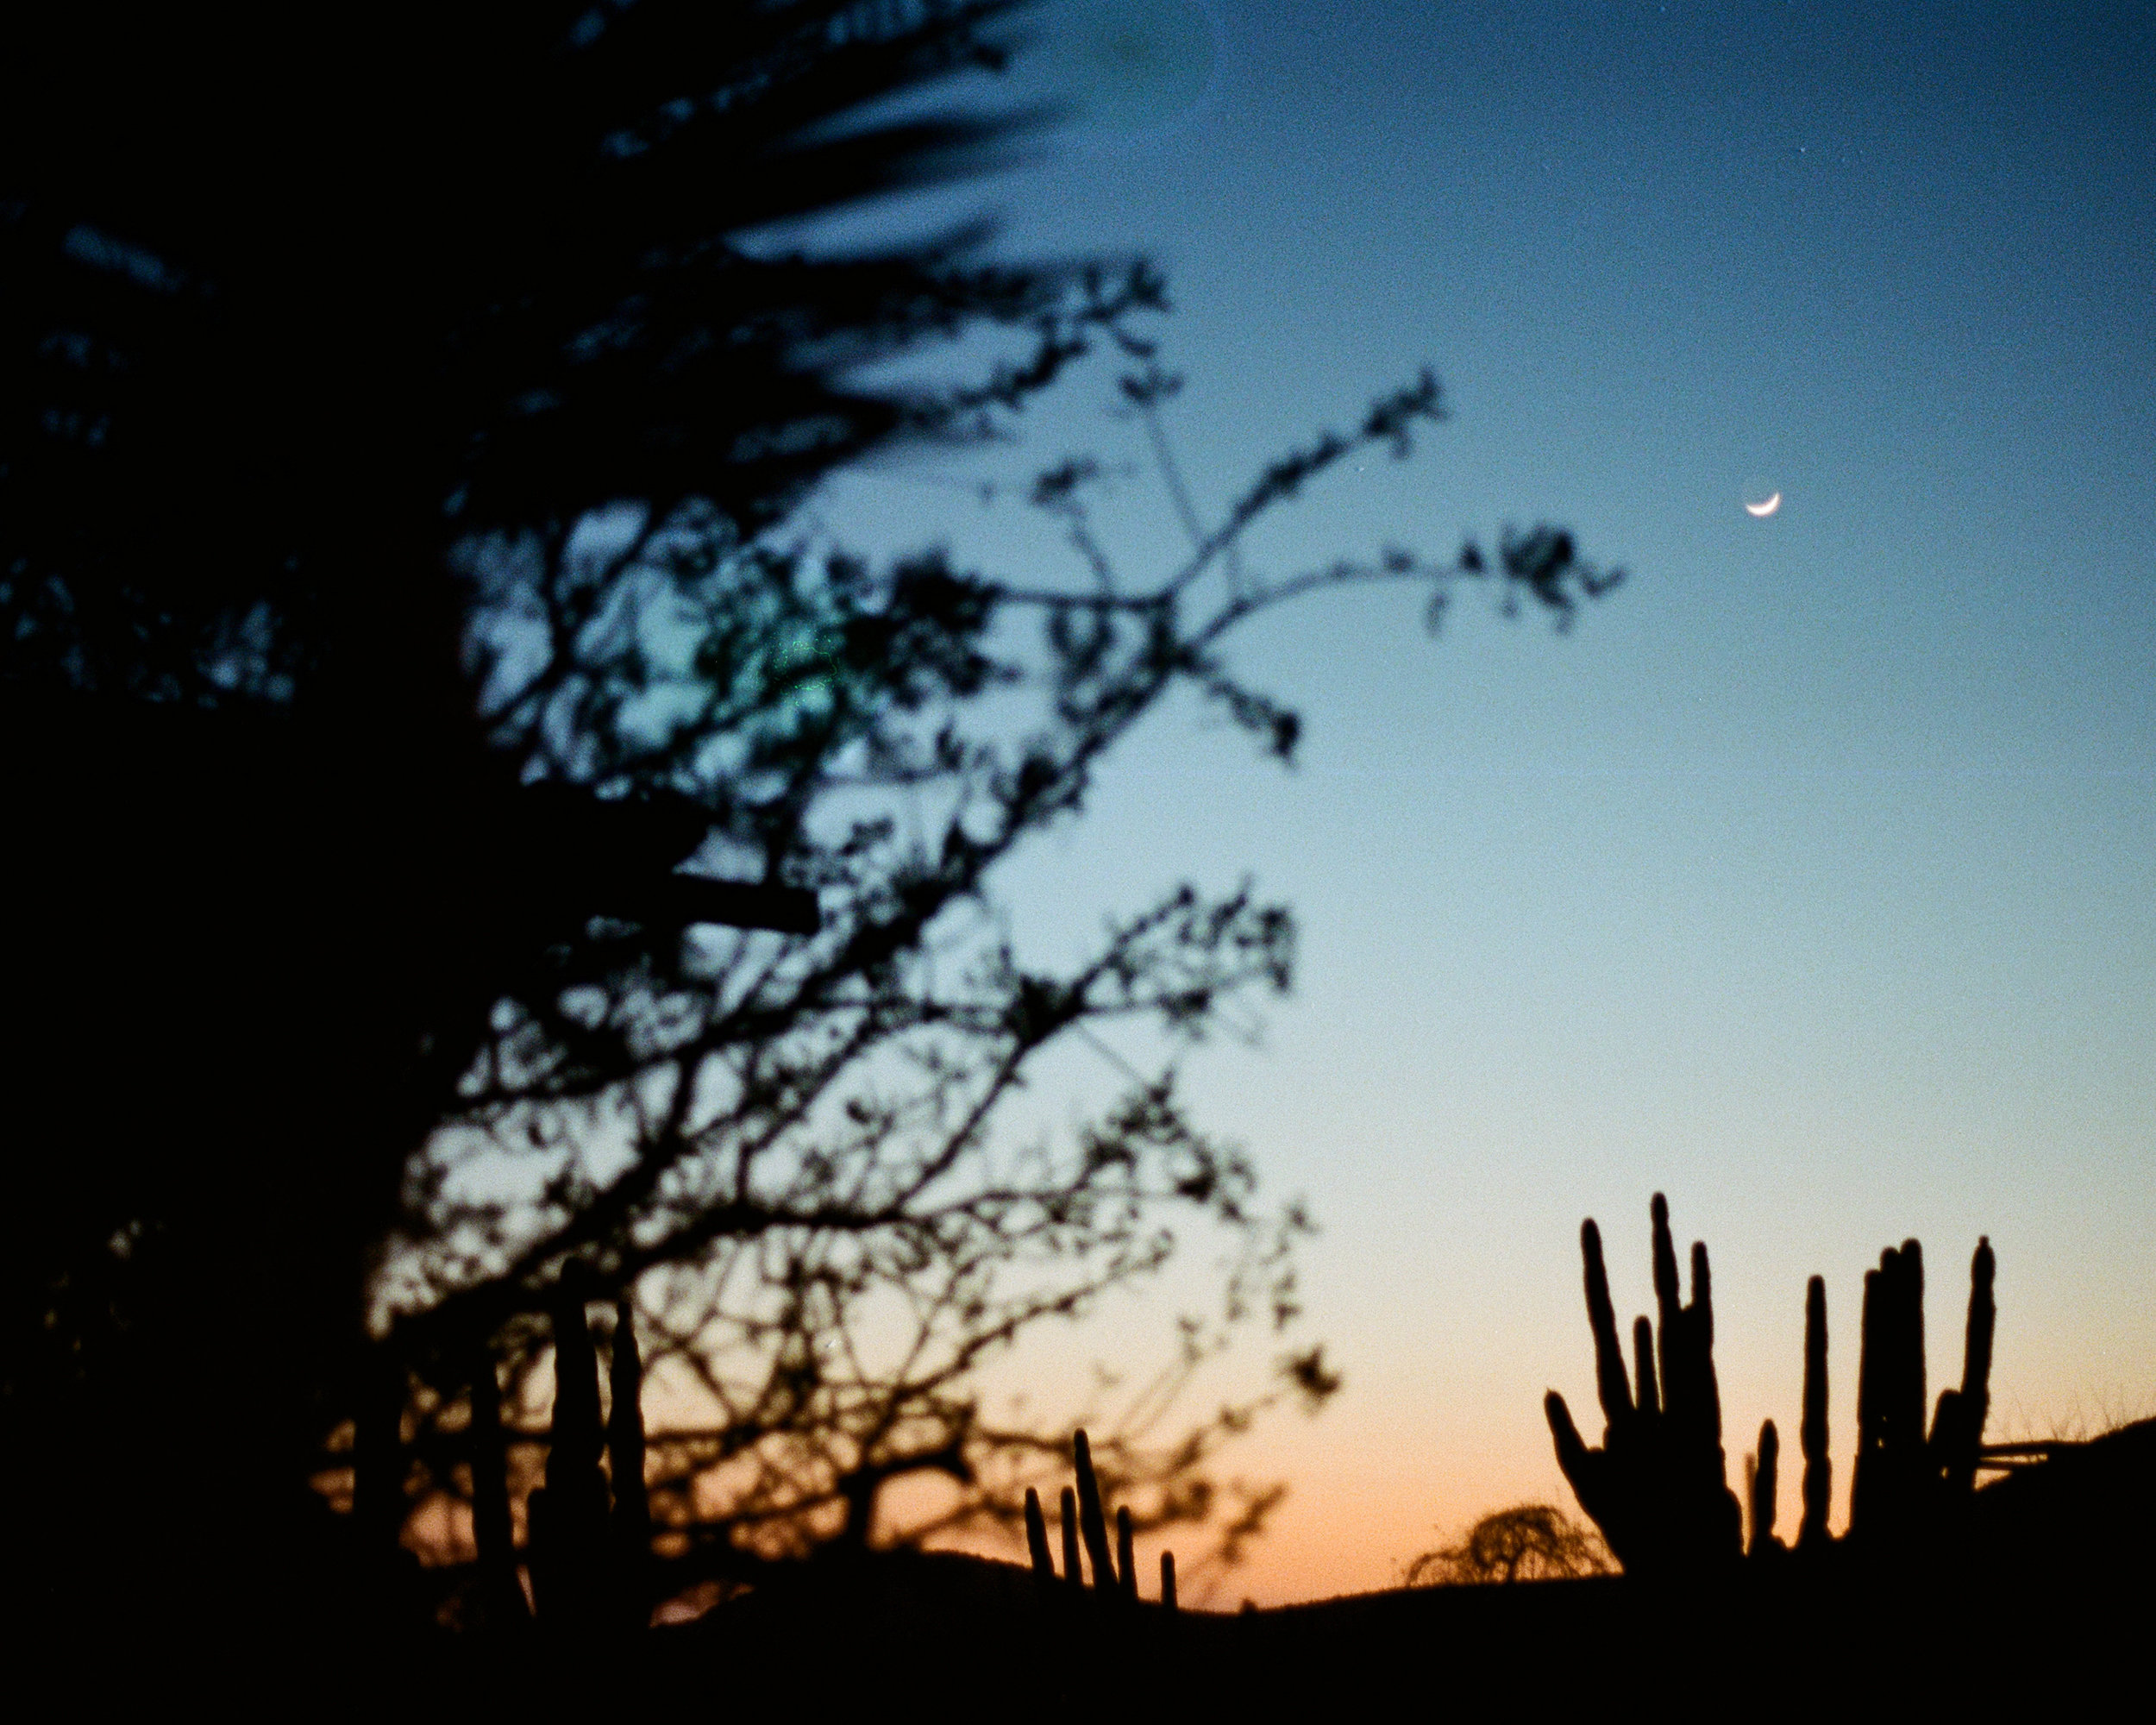 Photograph of sunset and moon in Baja Mexico by photographer Jon Moore, Creative Director at The Beans and Rice